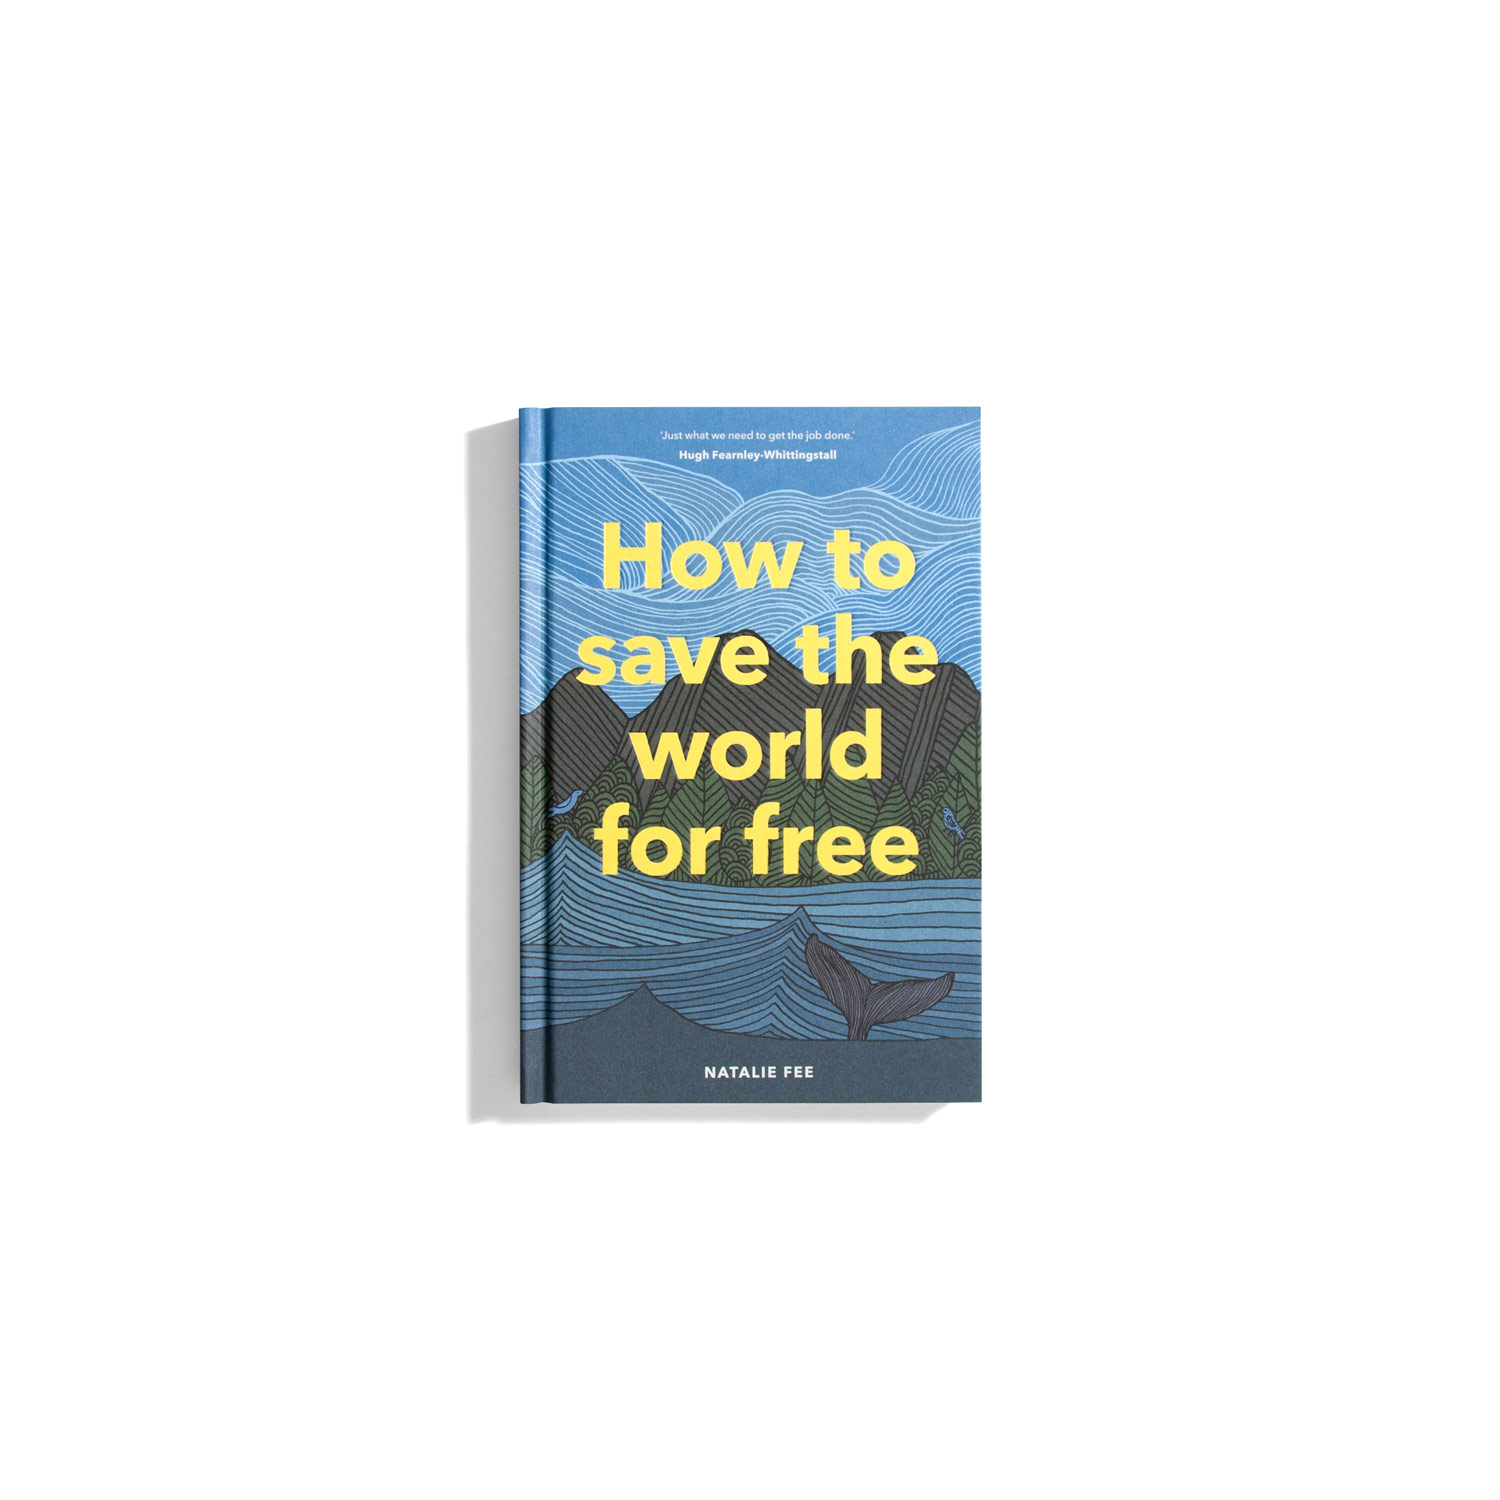 How to save the world for free - Natalie Fee